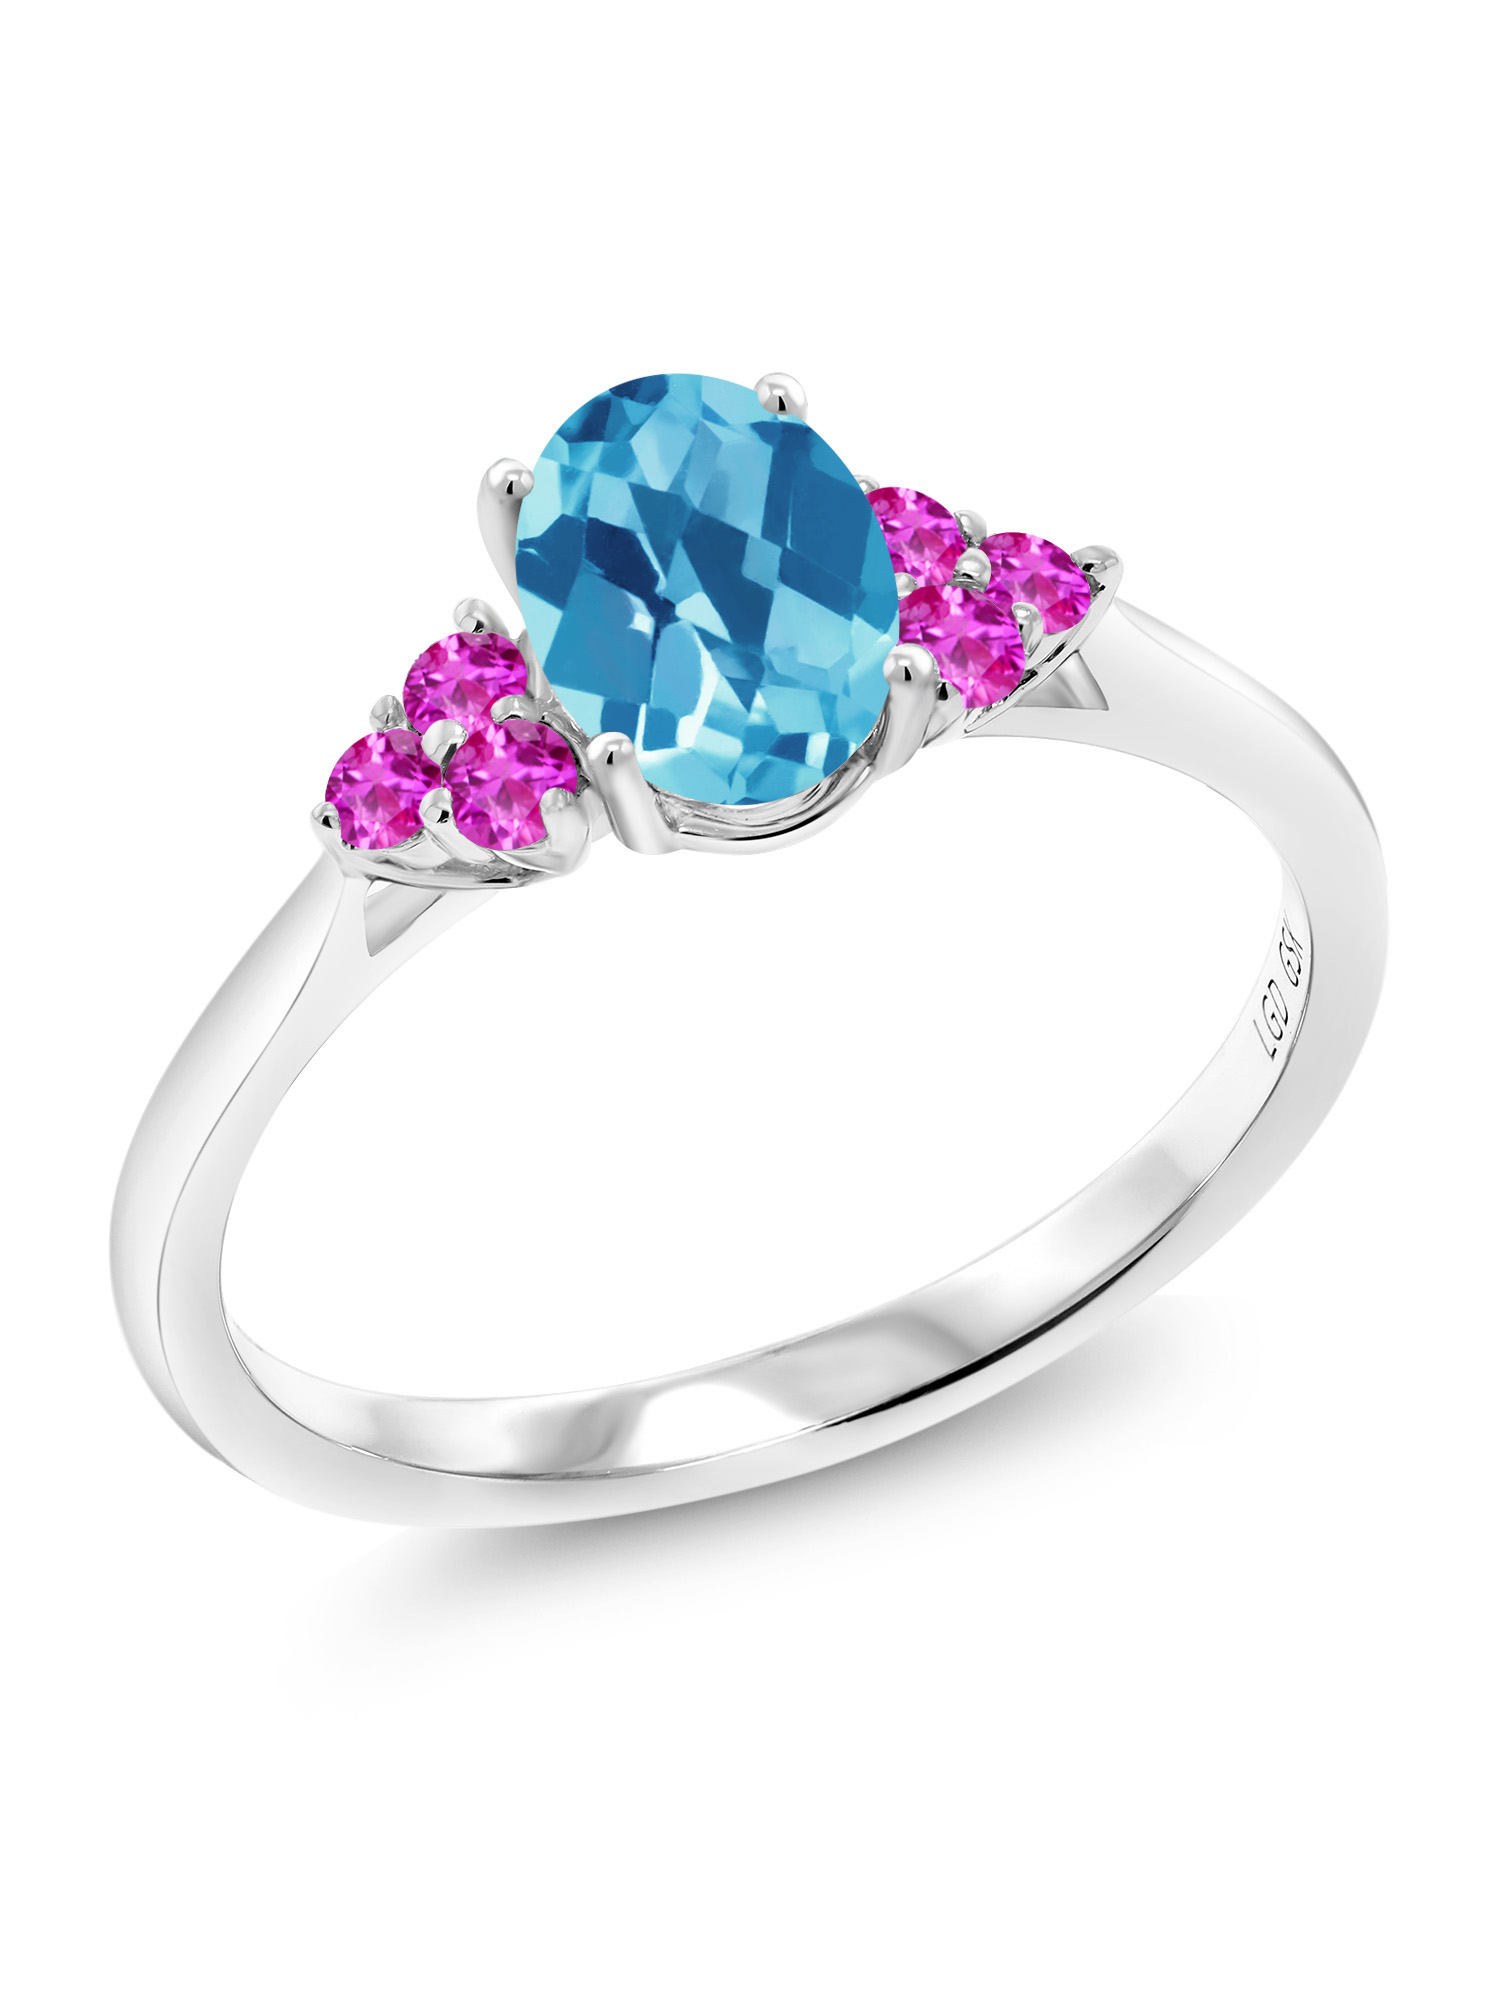 1.25 Ct Oval Checkerboard Swiss Blue Topaz Pink Sapphire 10K White Gold Ring by